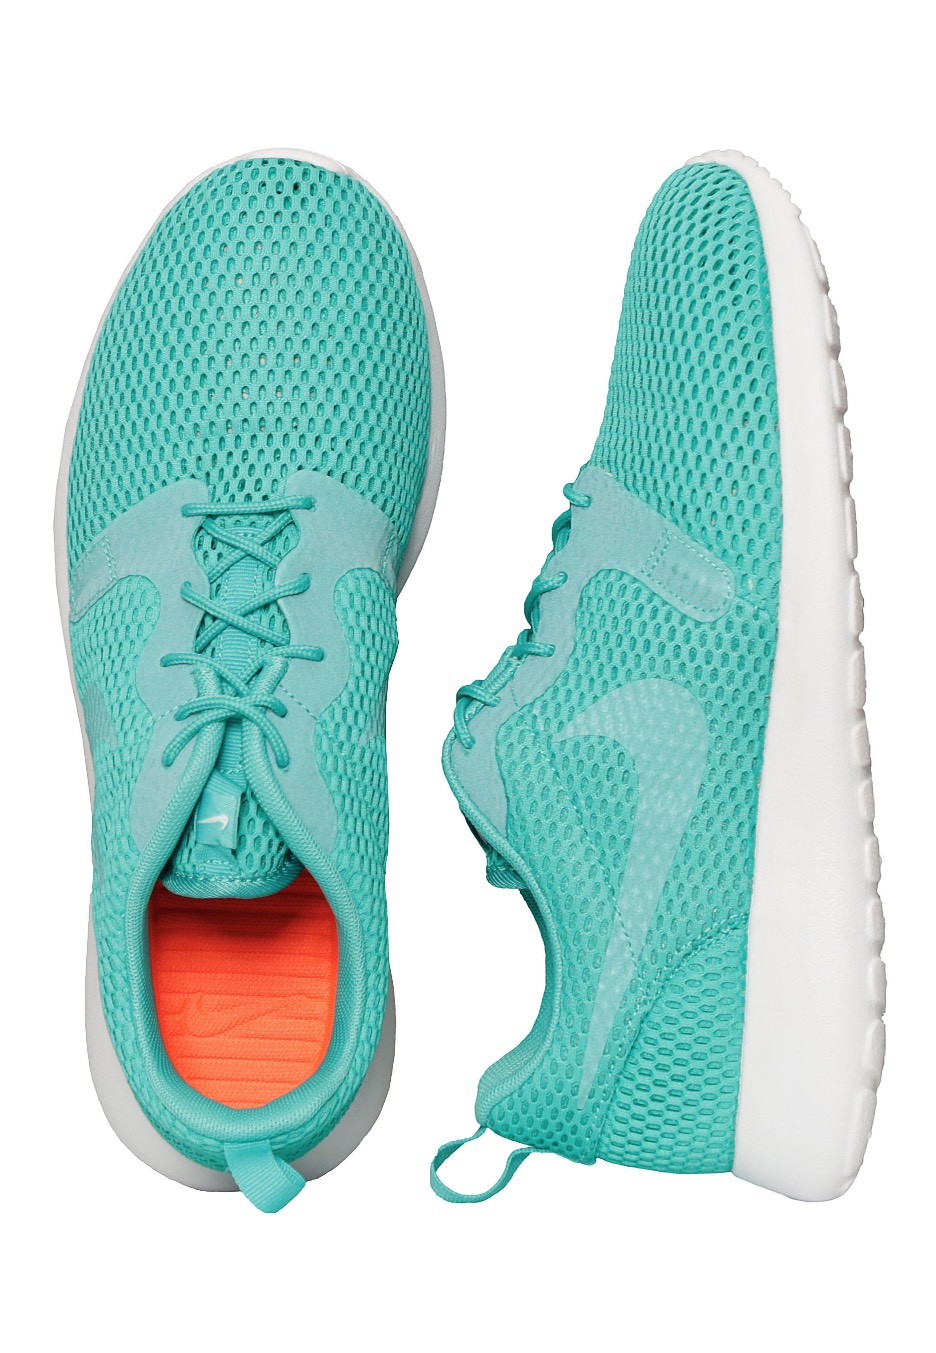 648d58be6e41 Nike - Roshe One Hyperfuse BR Clear Jade Clear Jade White - Shoes -  Impericon.com UK